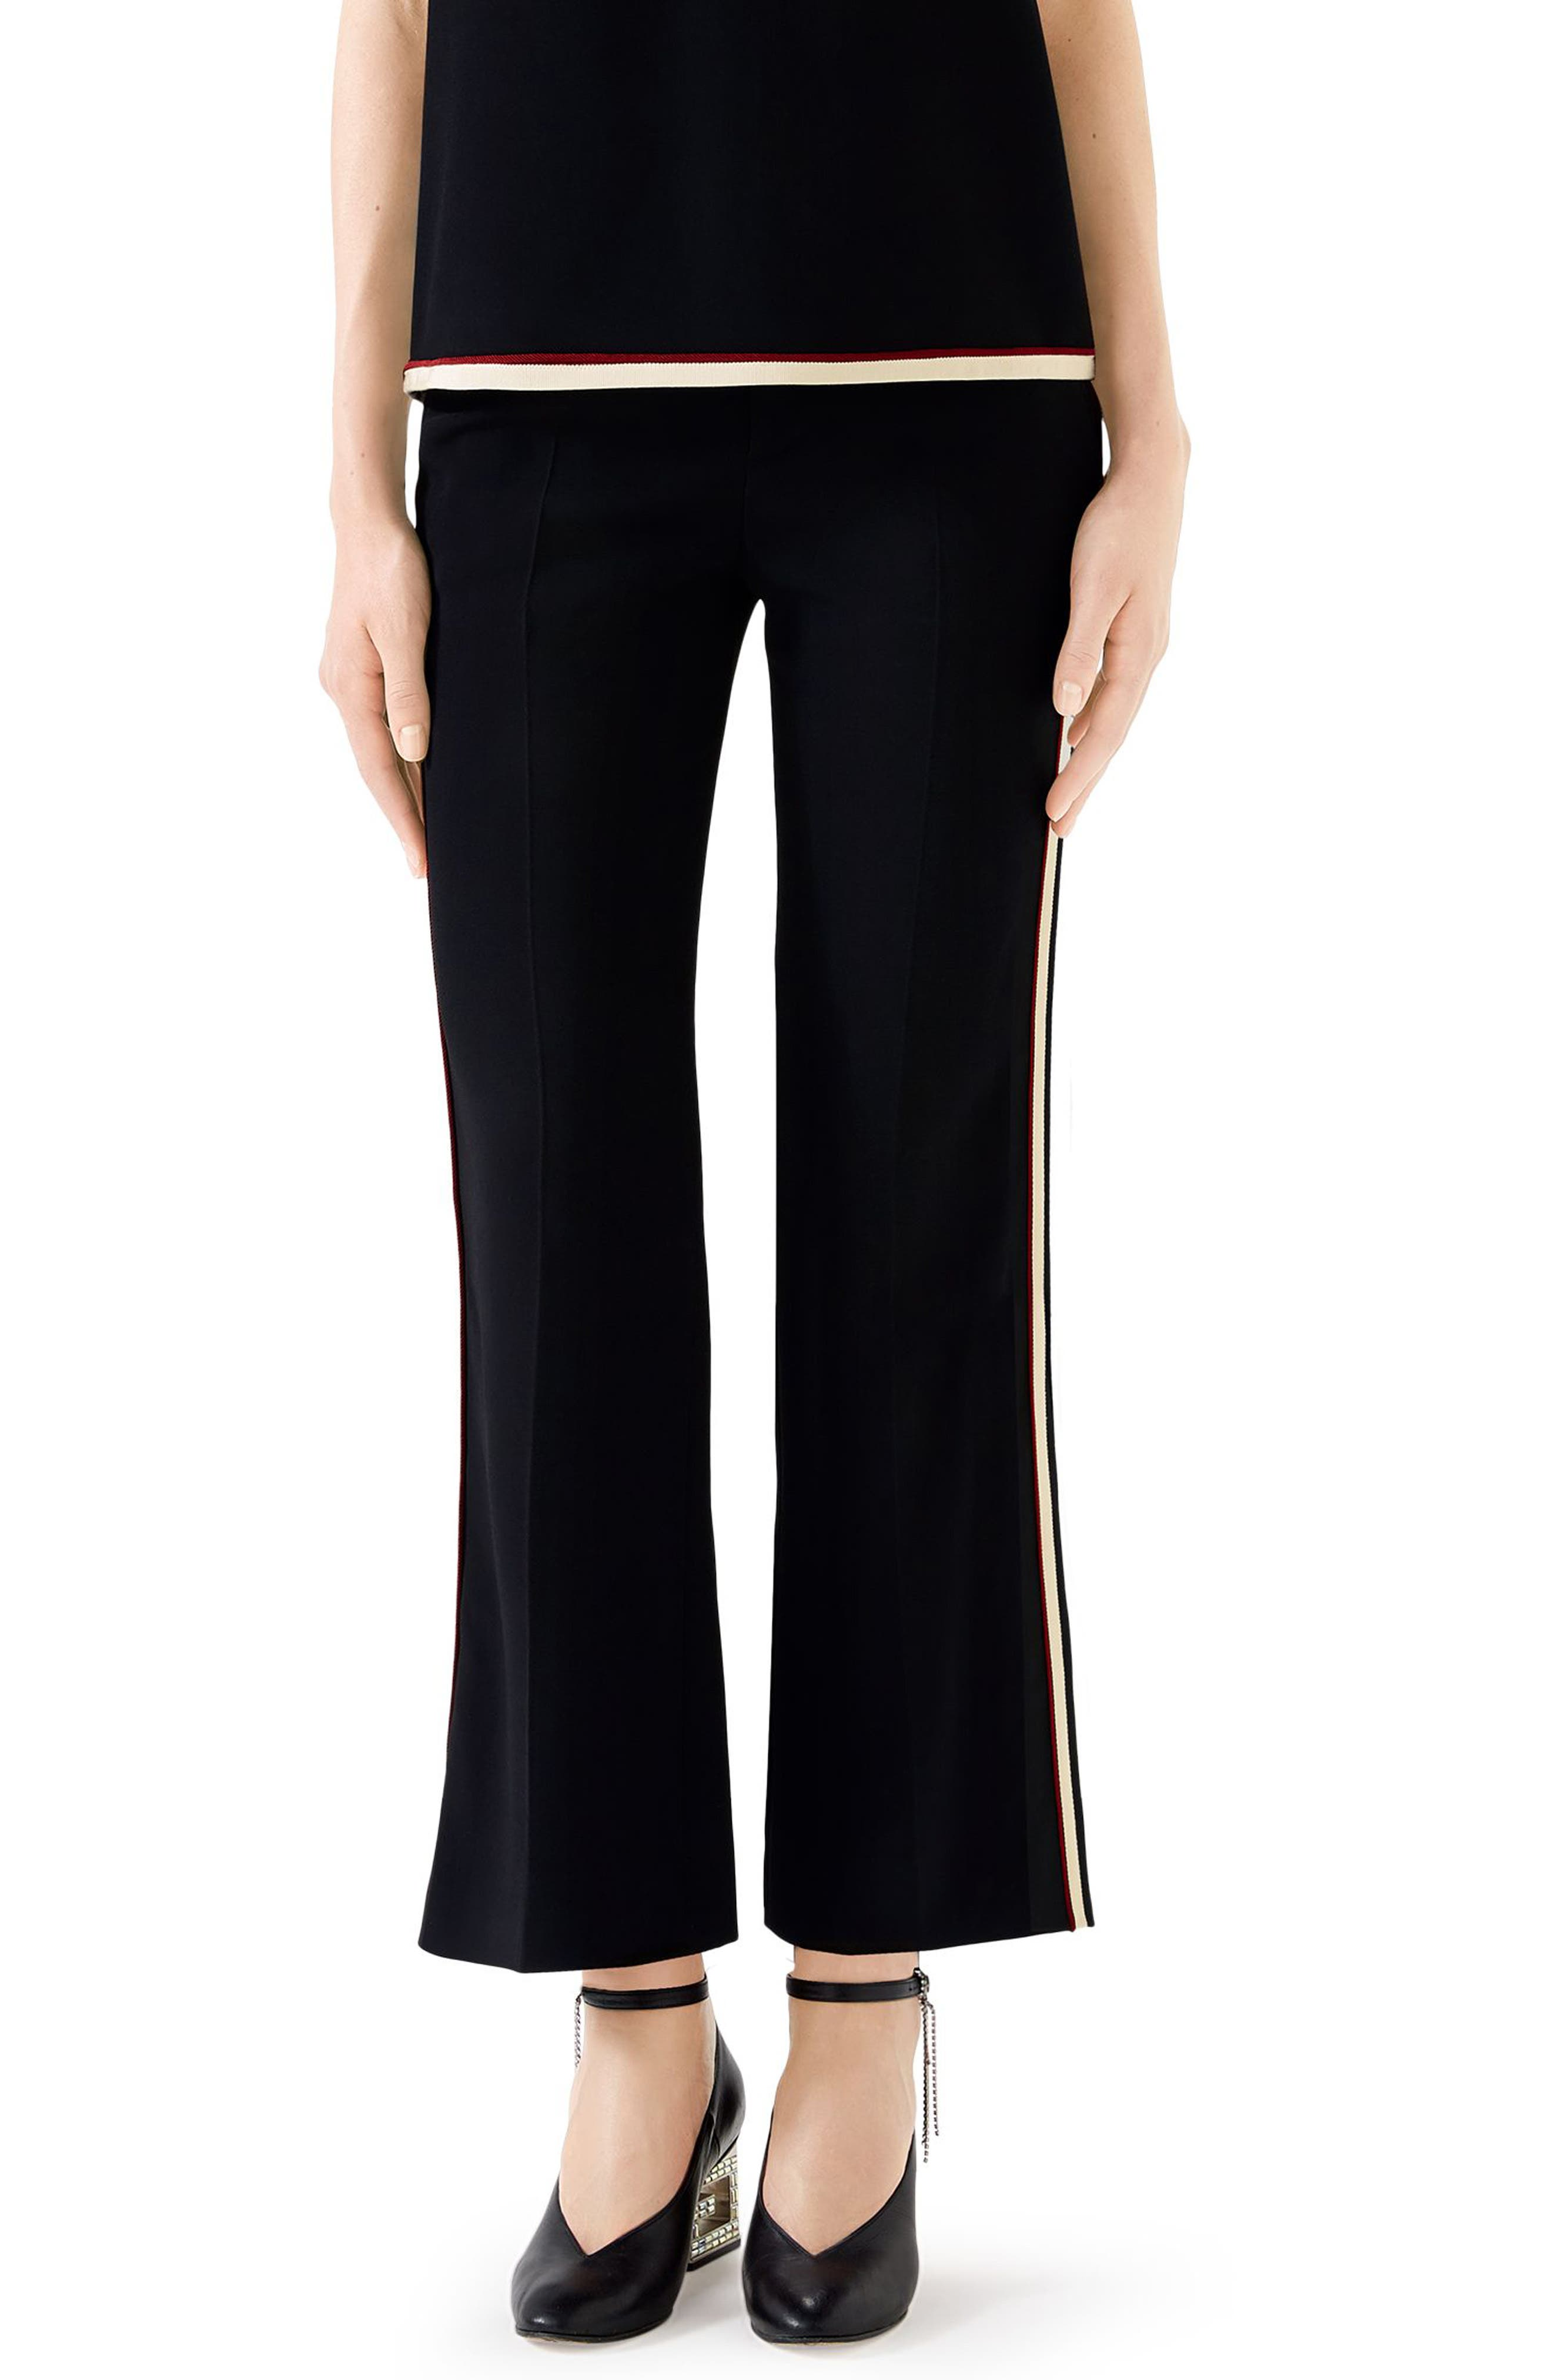 GUCCI,                             Side Stripe Stretch Cady Crop Flare Pants,                             Main thumbnail 1, color,                             BLACK